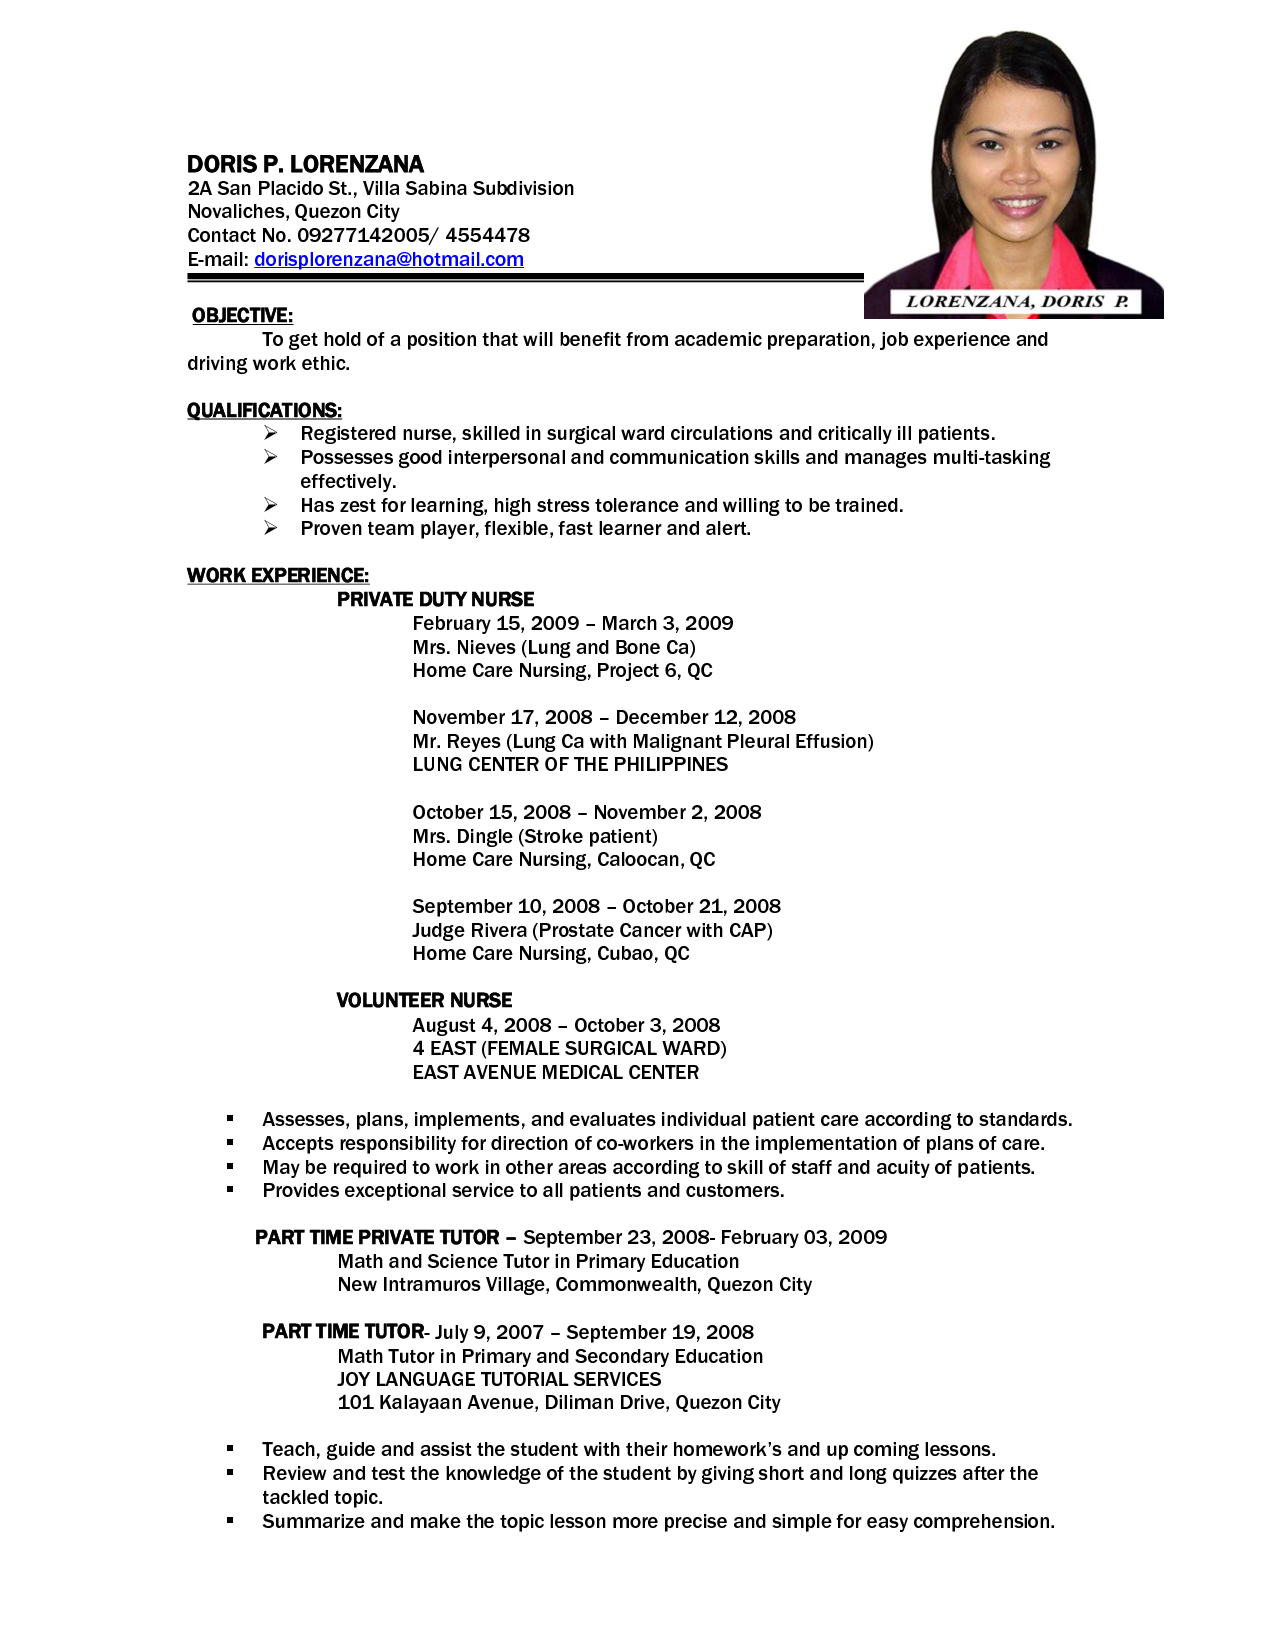 Resume Format Nursing Job